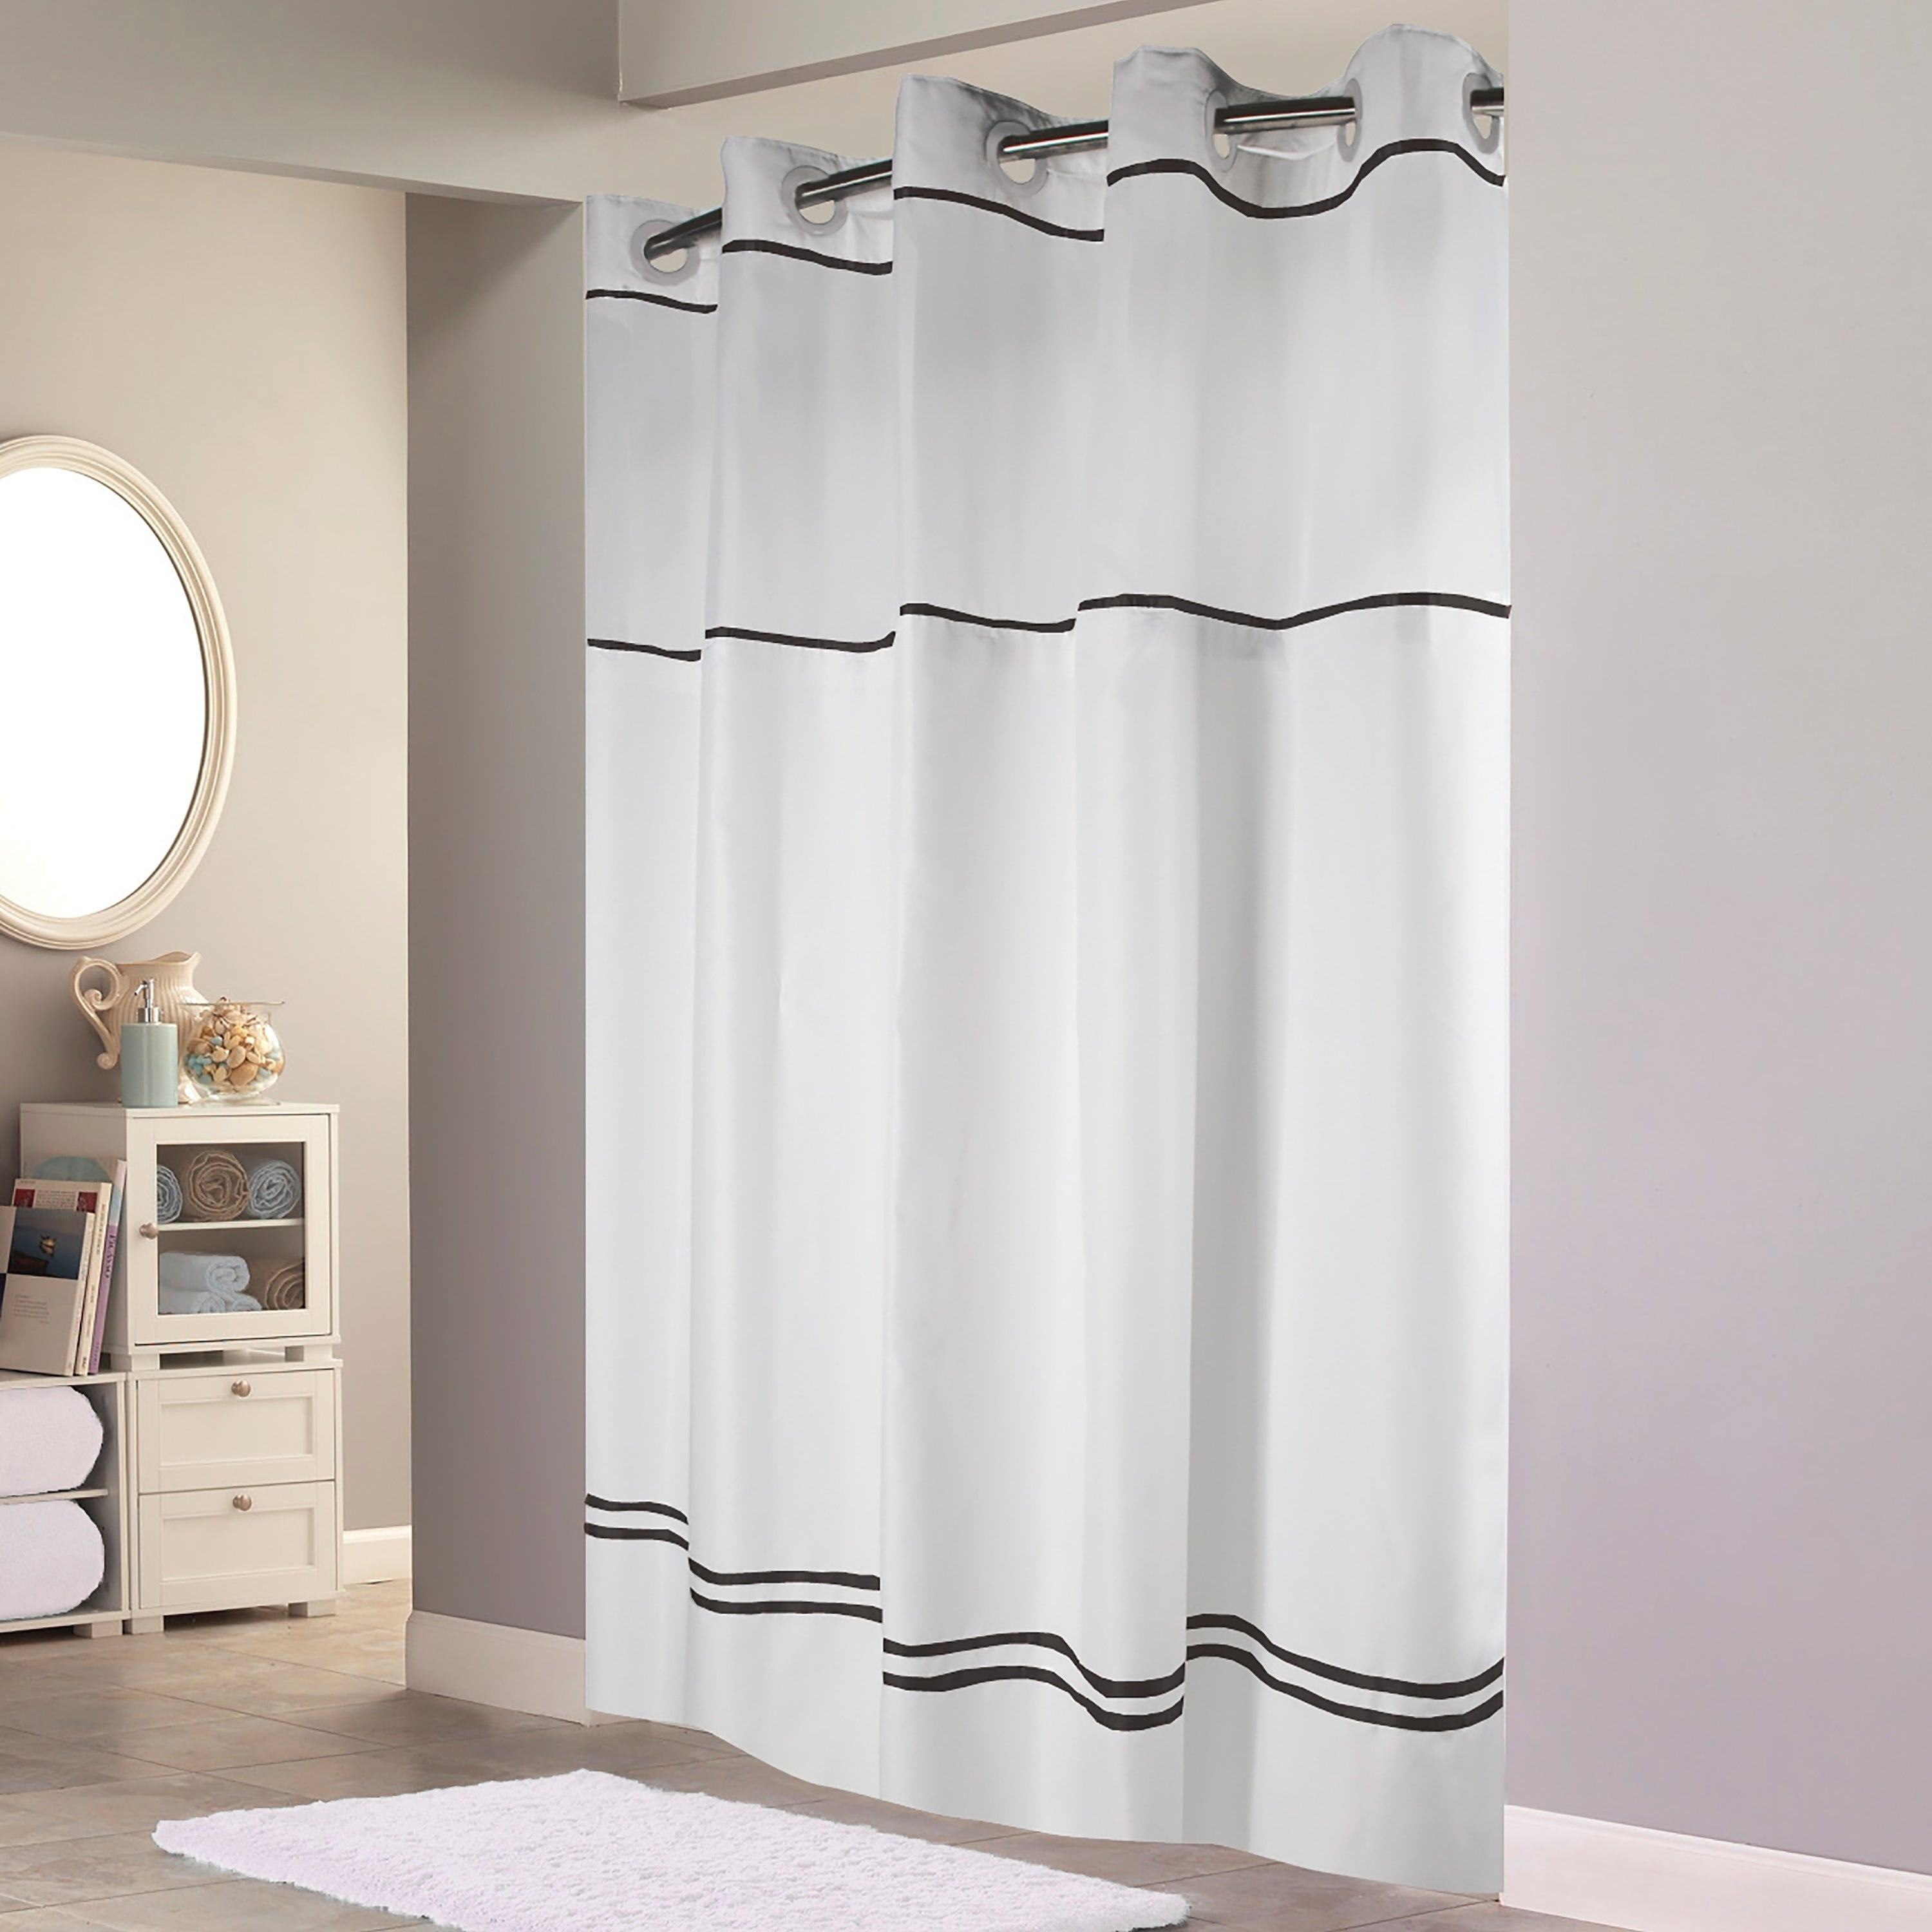 Hookless® Shower Curtain Monterey White/black Black Striped Victorian Polyester - Diamond Home USA